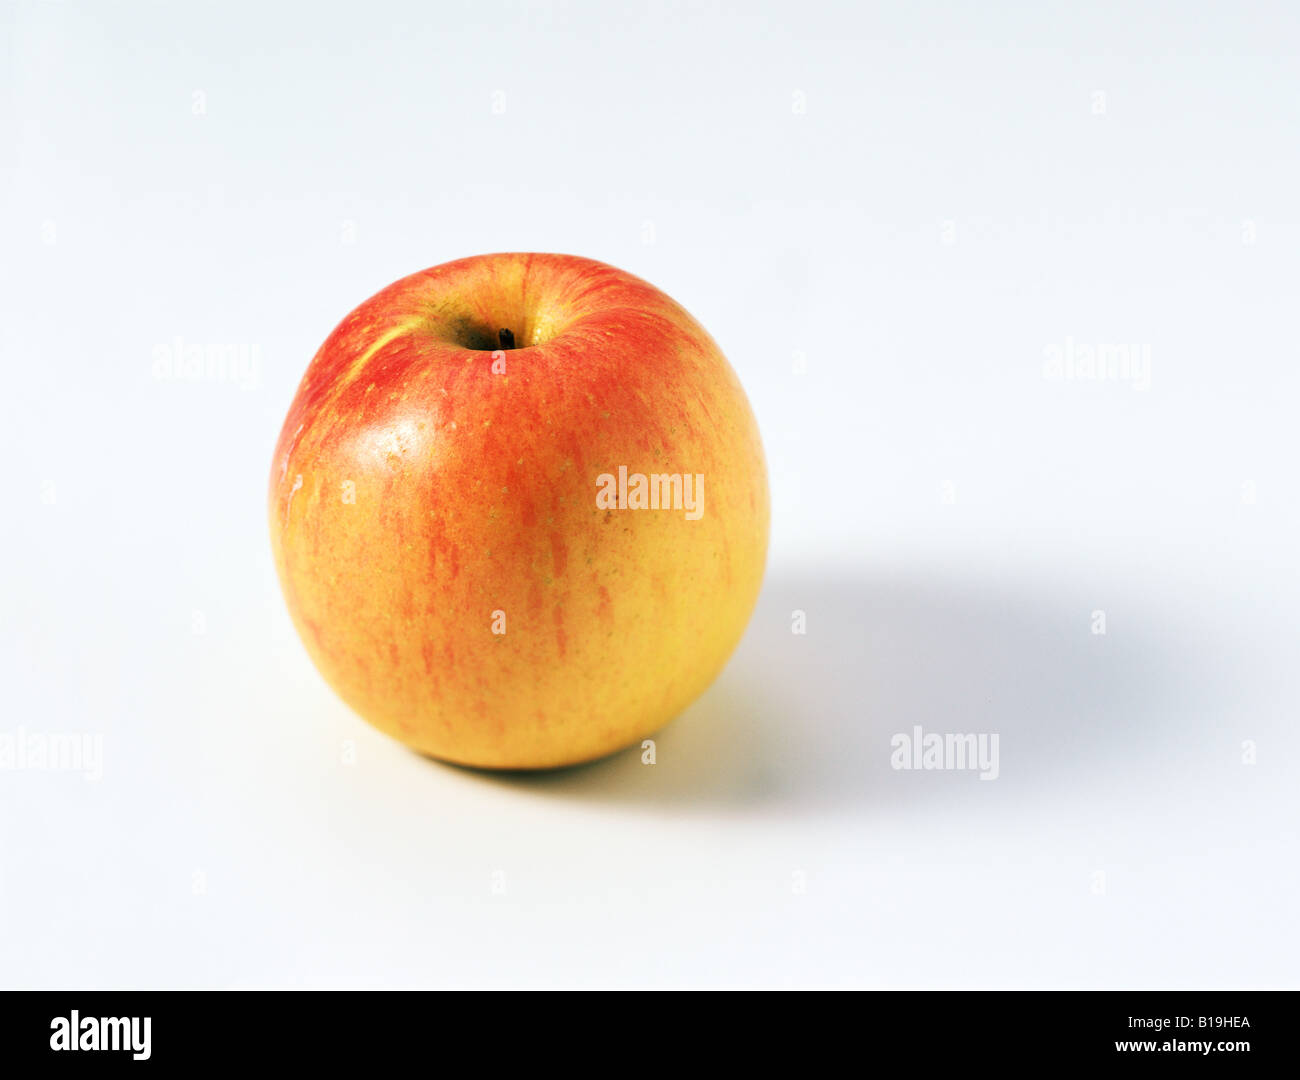 Fuji apple - Stock Image